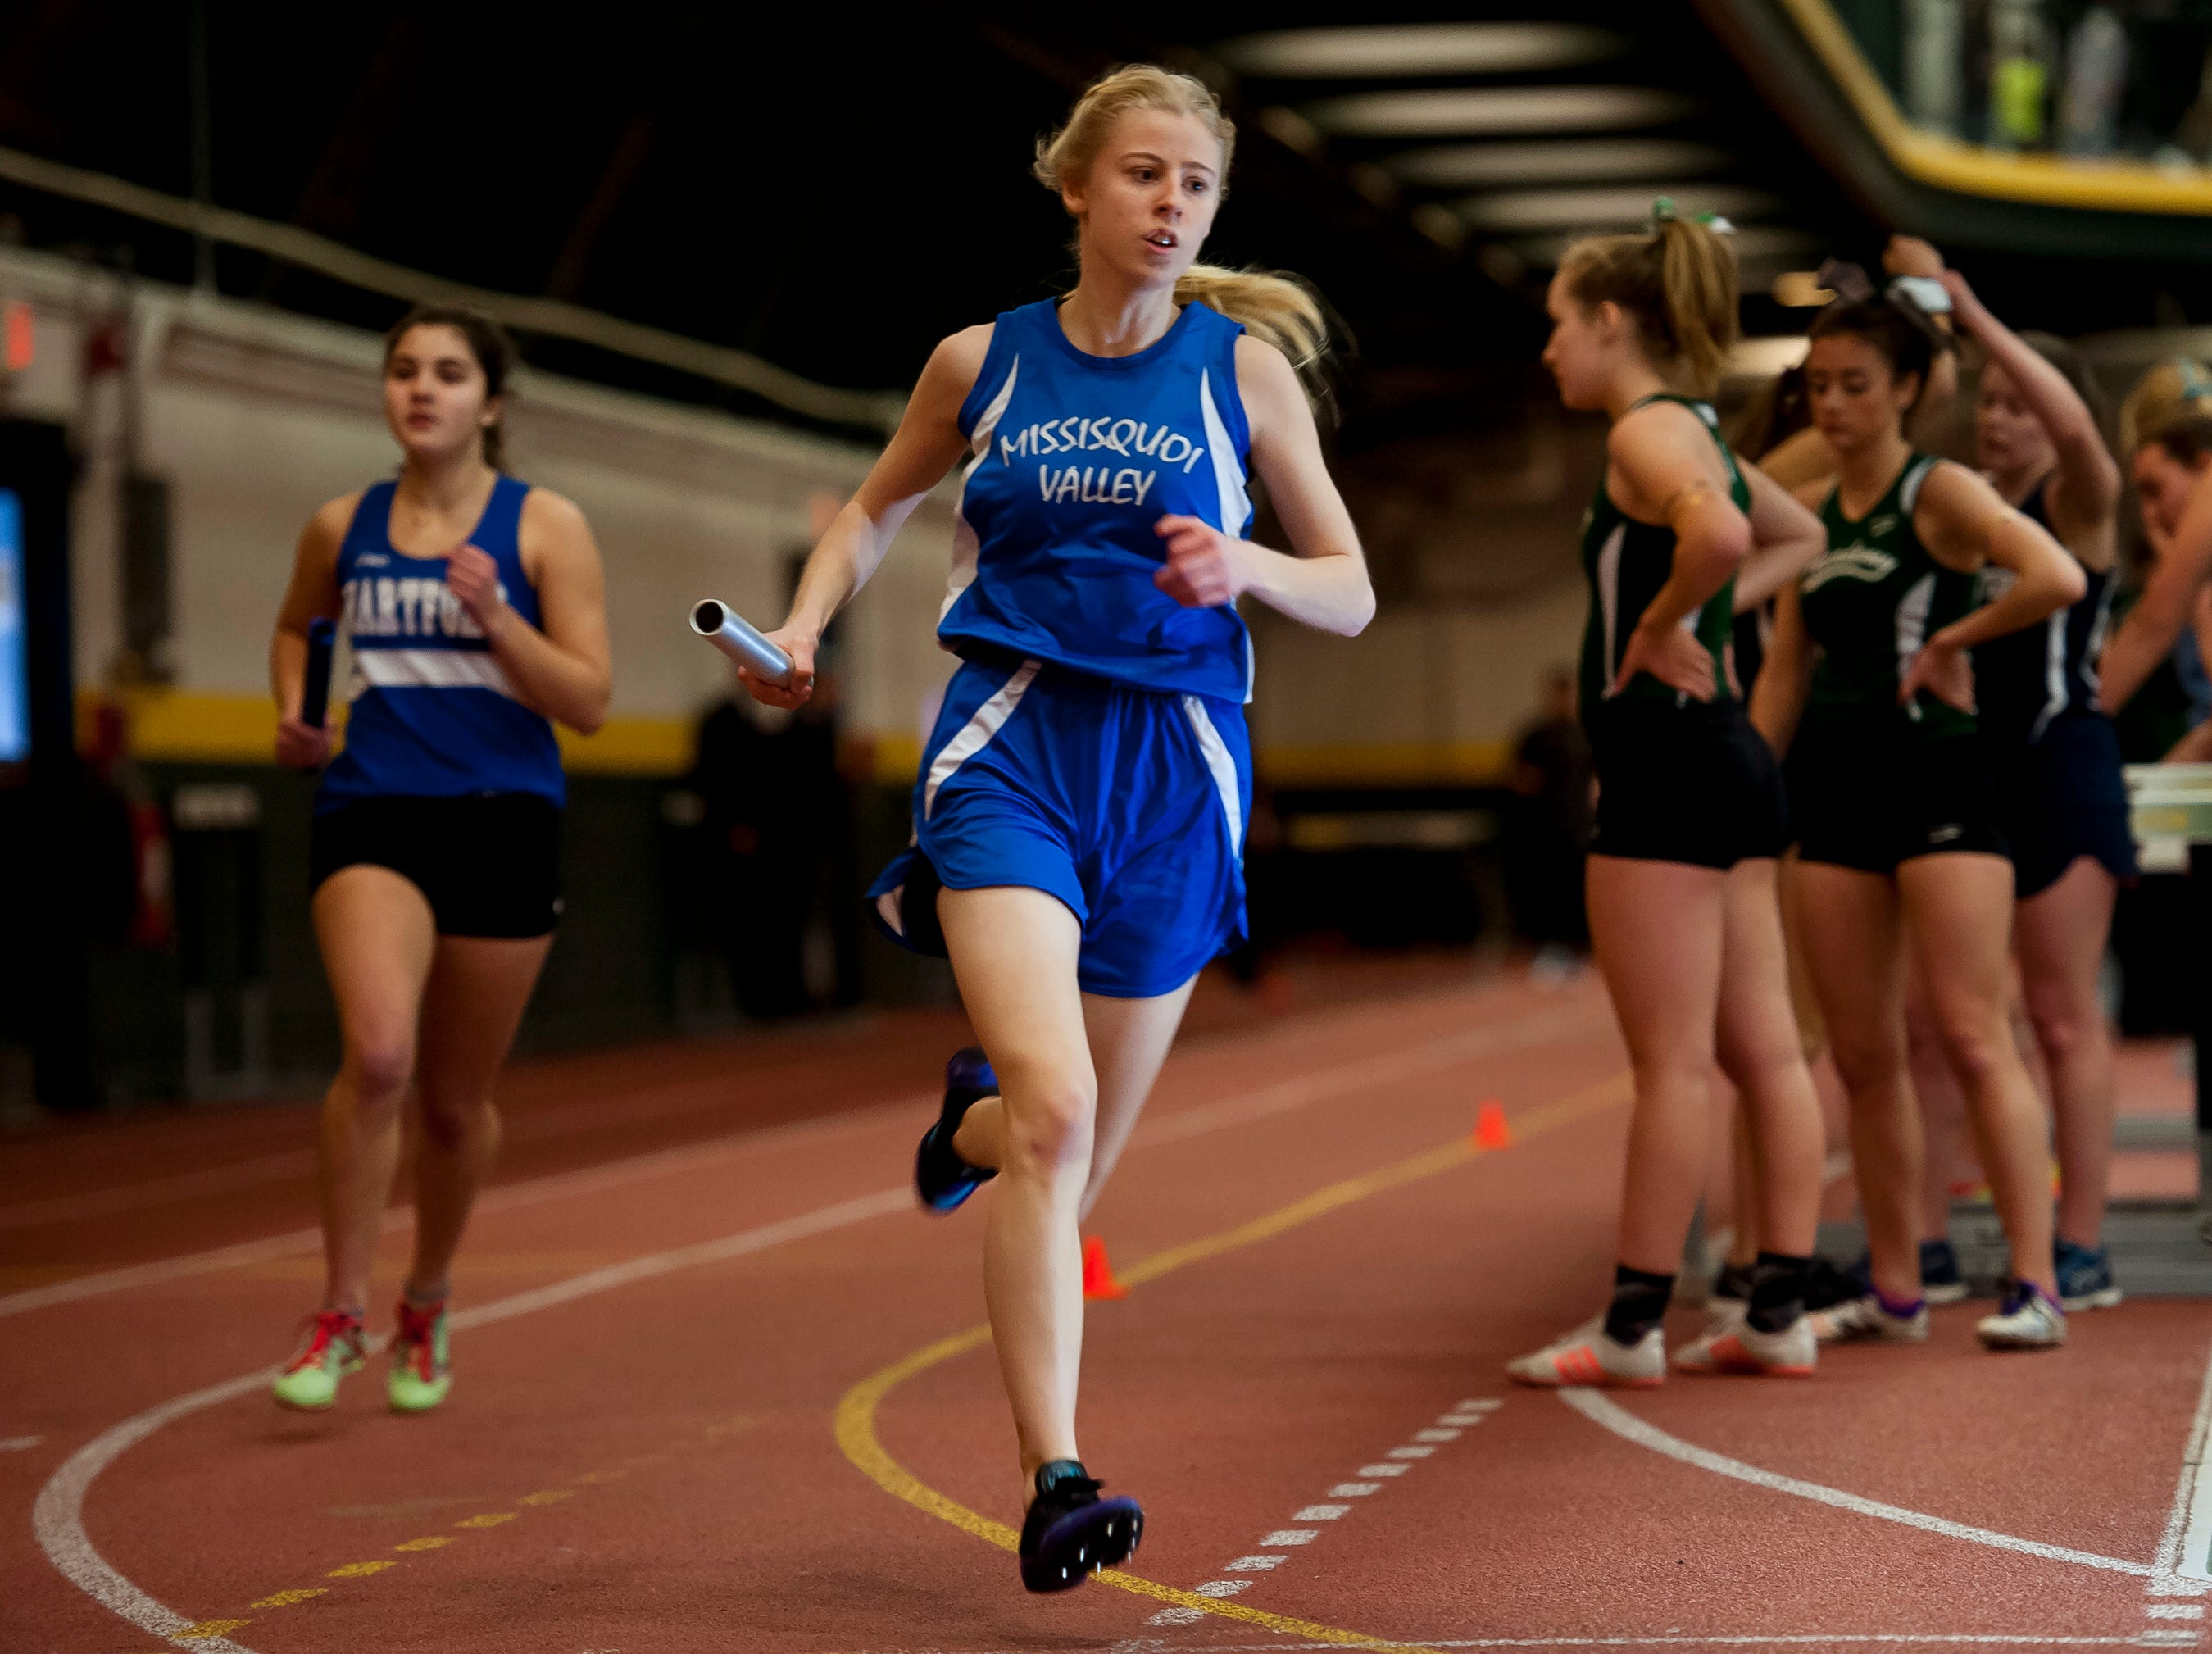 Missisquoi's Ruth Brueckner, center, heads into a turn during her leg of the girls 4x800 relay at the high school indoor track state championships at the University of Vermont on Saturday.